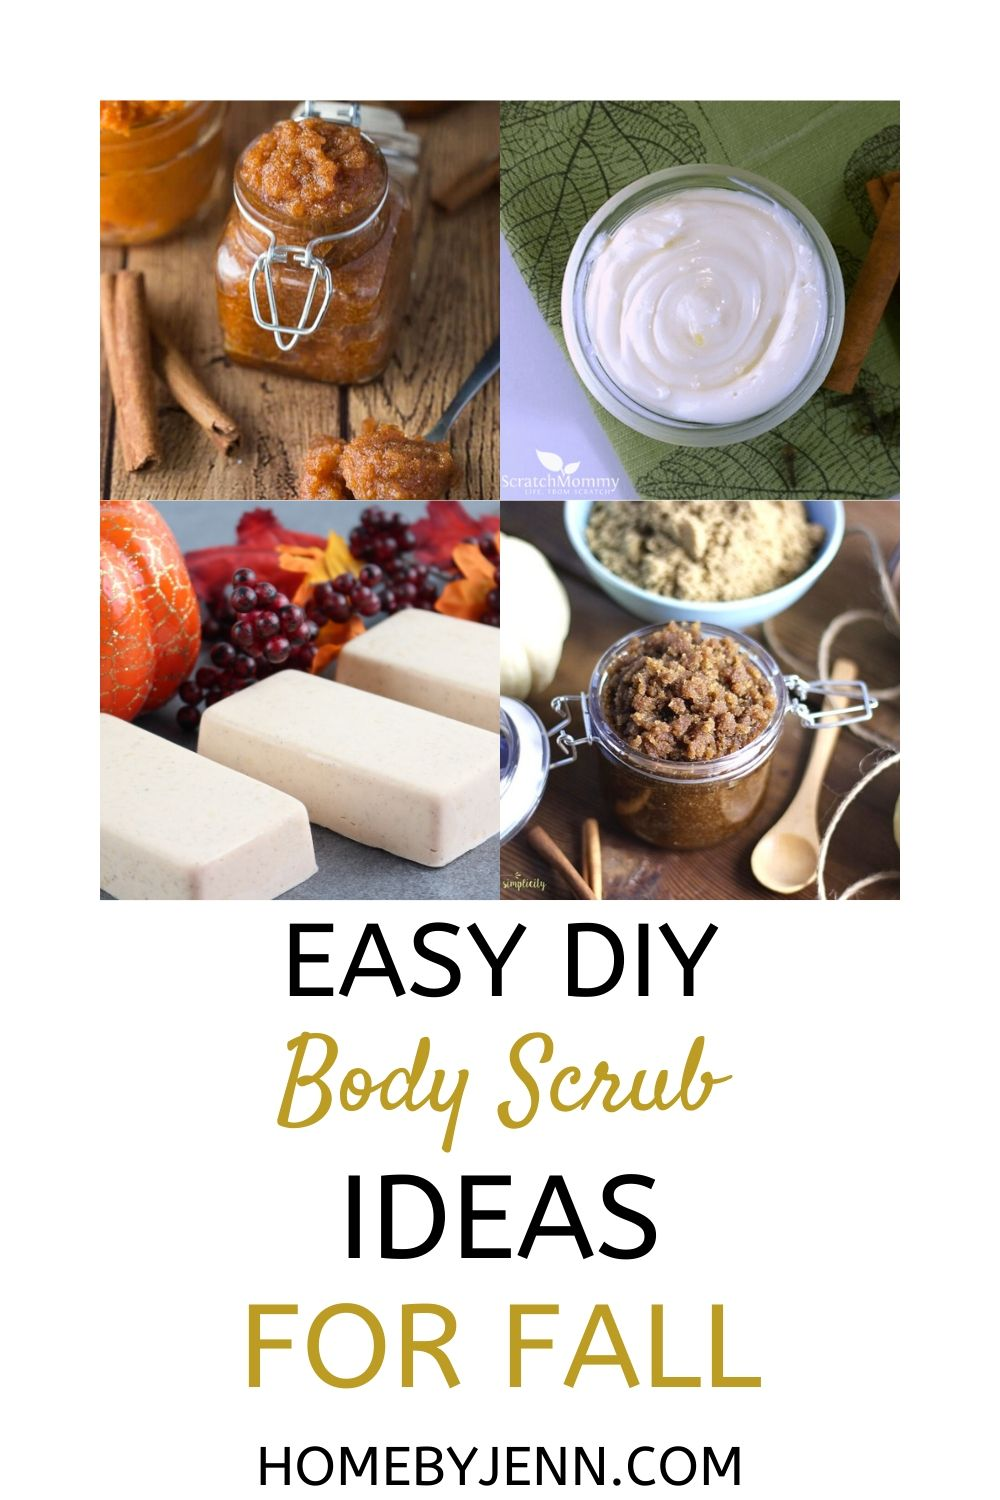 Here are 15 absolutely easy and refreshing DIY body scrub ideas to make to soothe that dry itchy skin, or give as gifts. Easy, and they smell amazing | #diy #sugarscrub #soap #giftideas #holidays #fall #fallscent #beauty #homemade via @homebyjenn